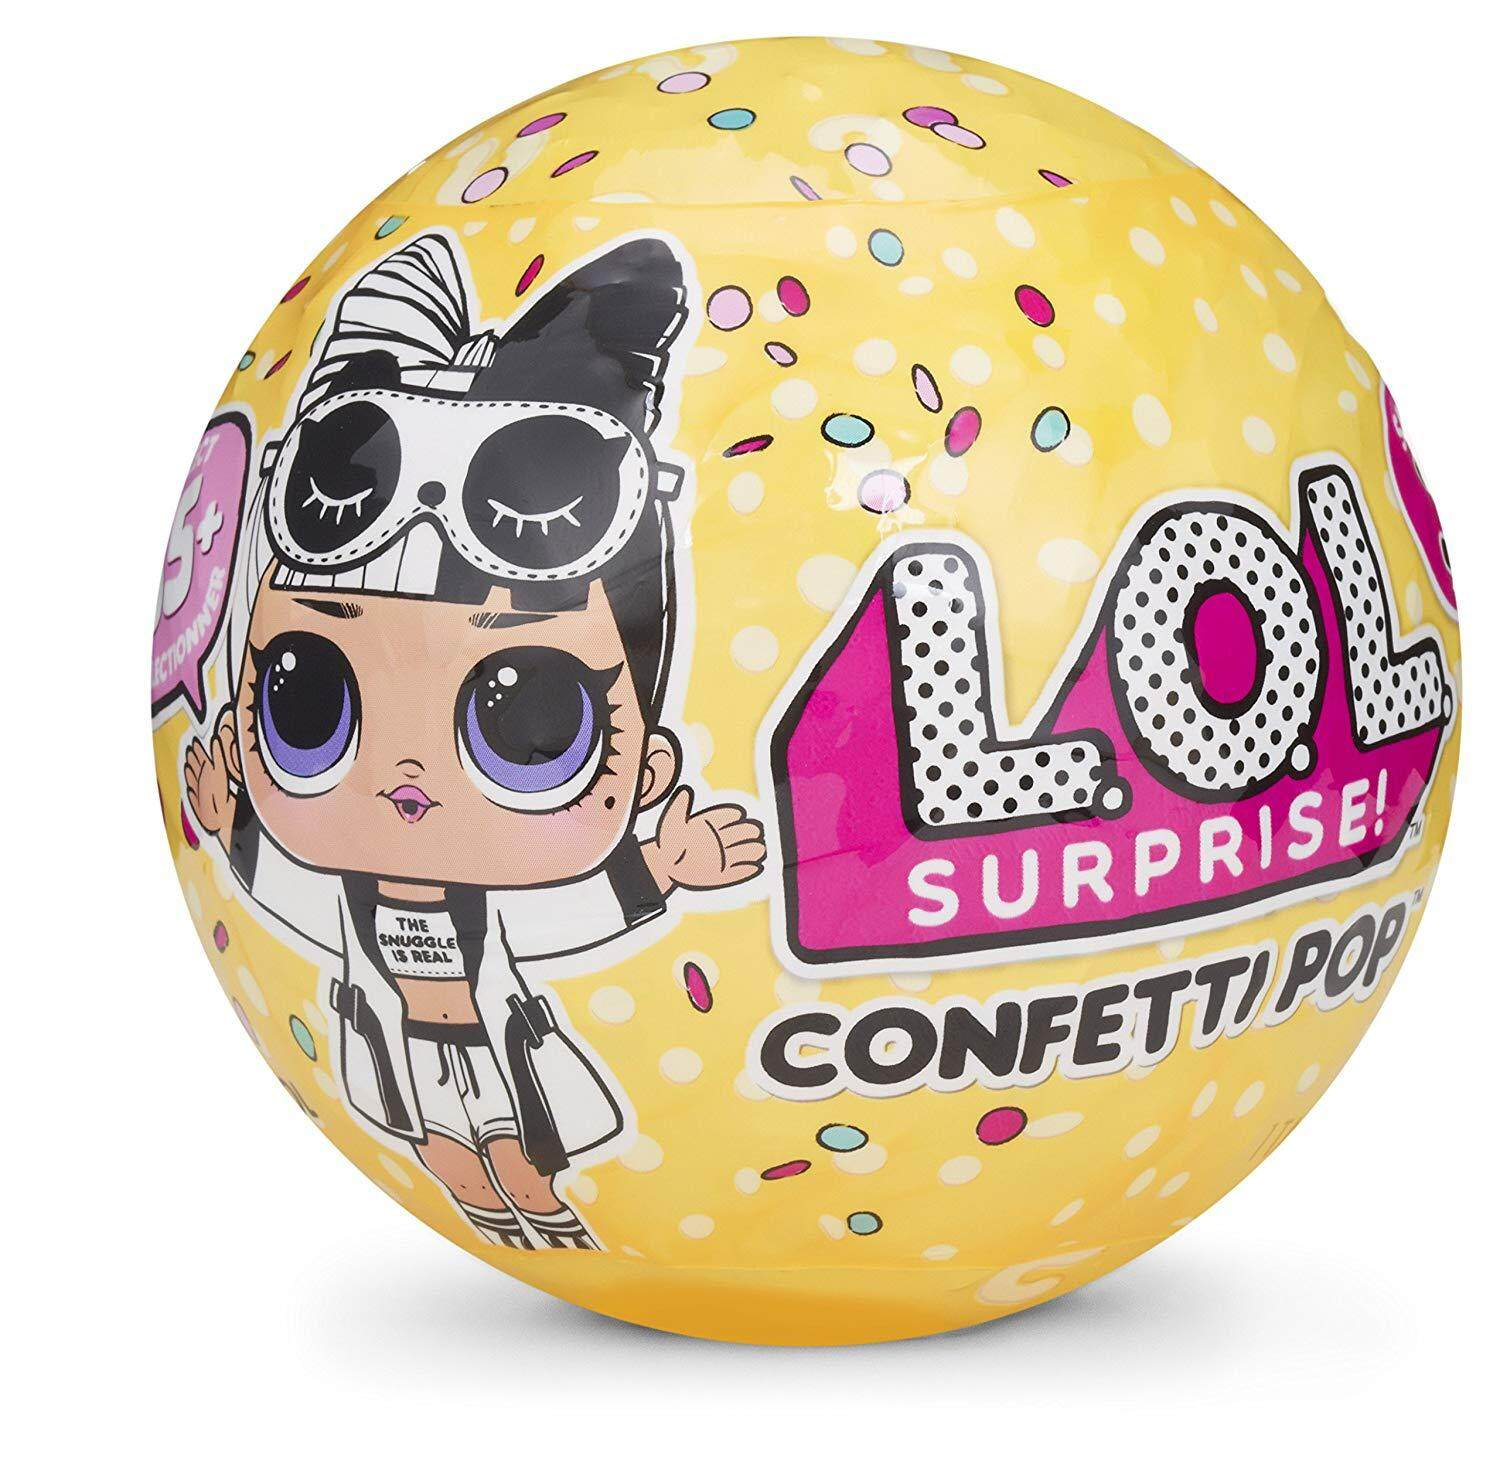 Lol Toys Philippines Lol Games Collectibles Figurines For Sale